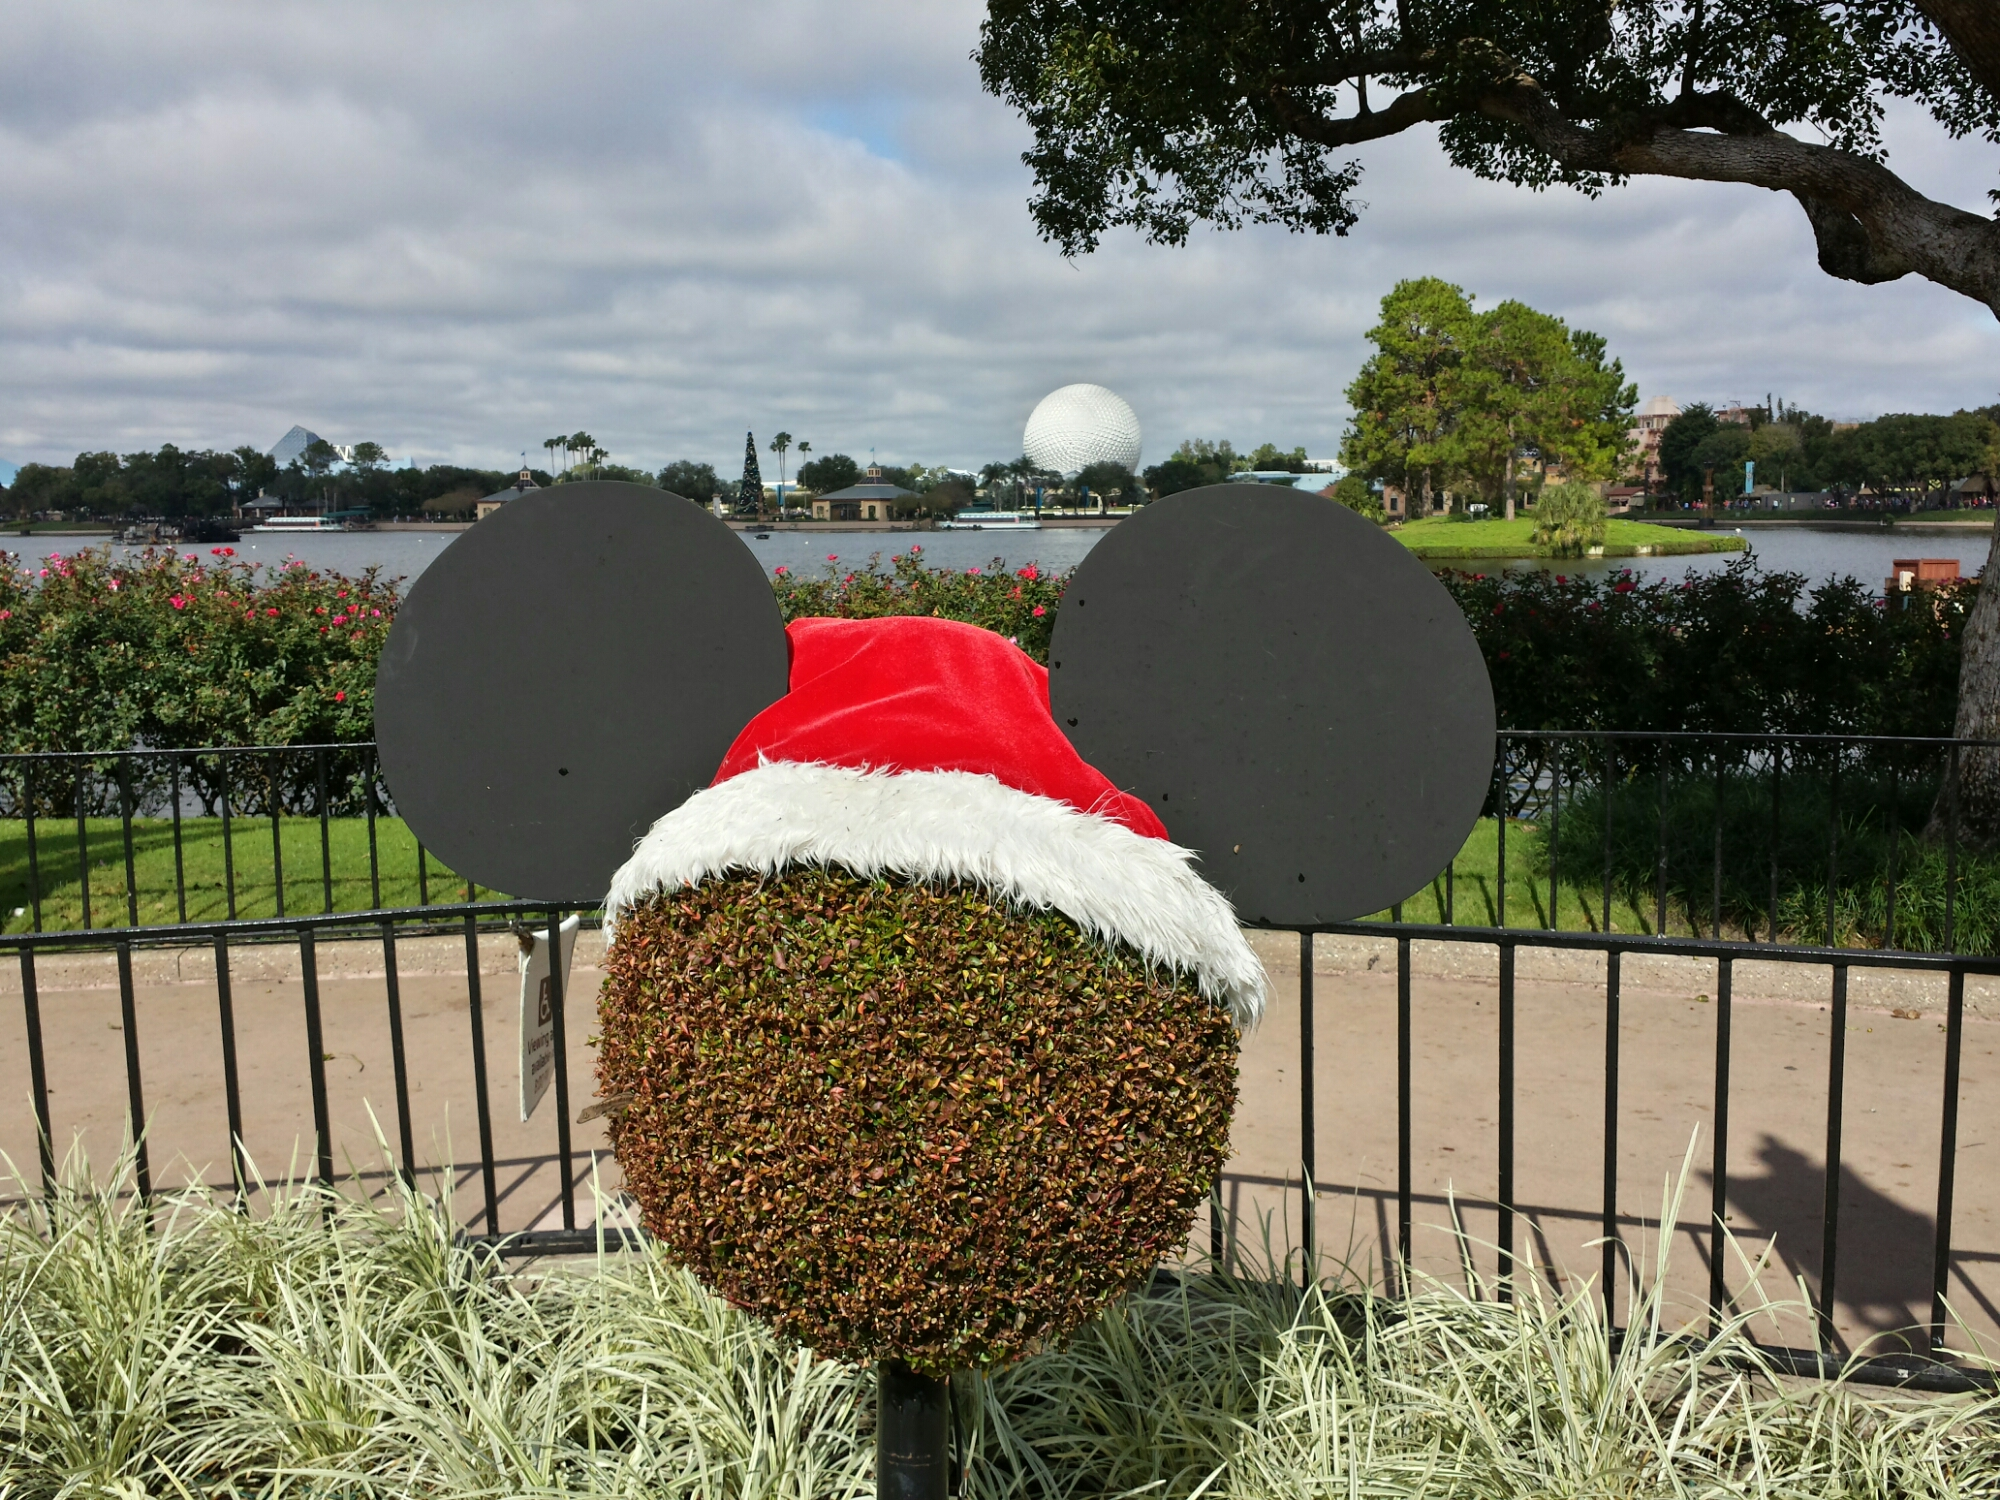 Mickey inspired topiaries in World Showcase at #Epcot